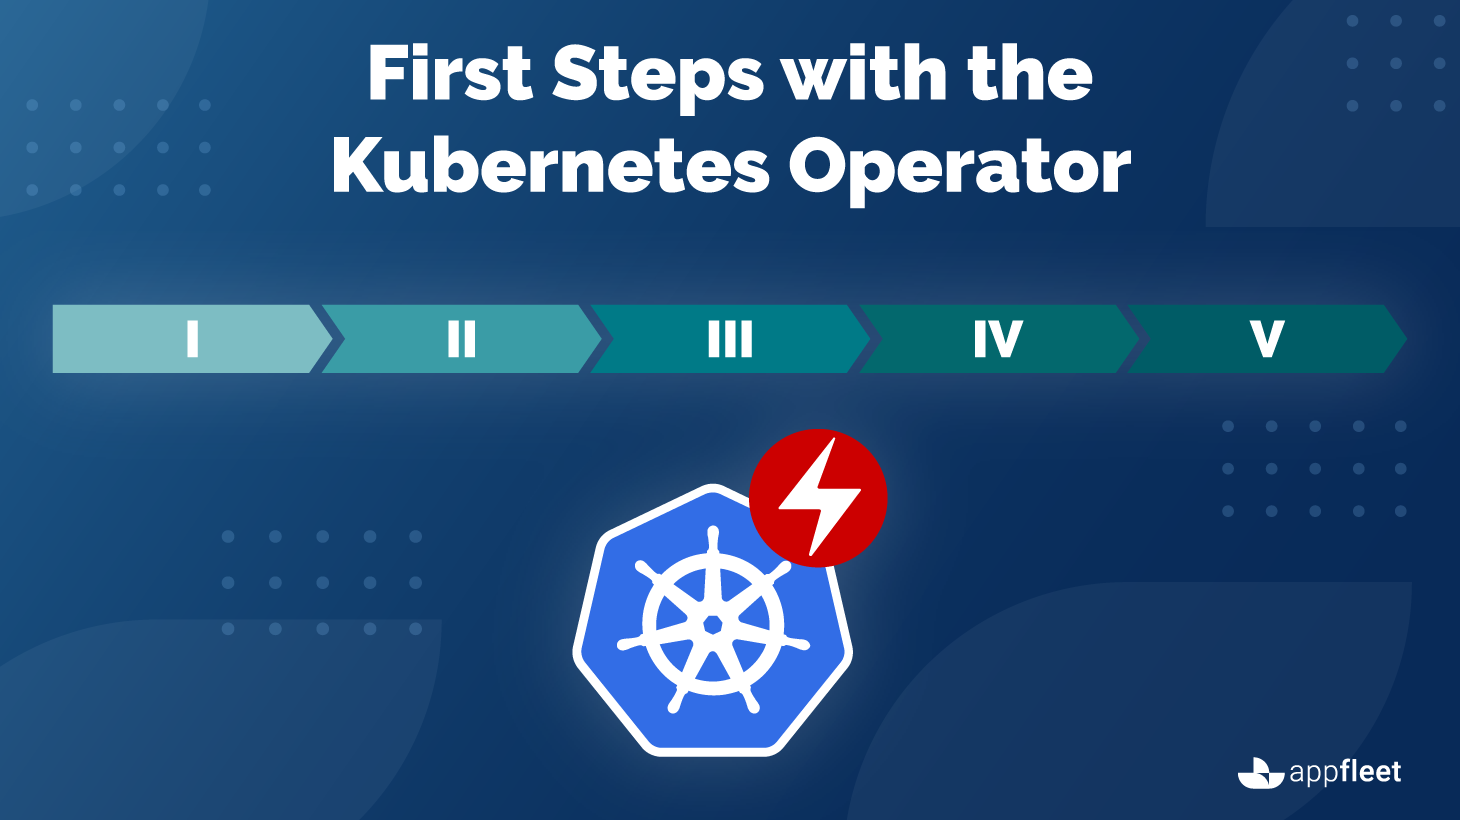 First Steps with the Kubernetes Operator